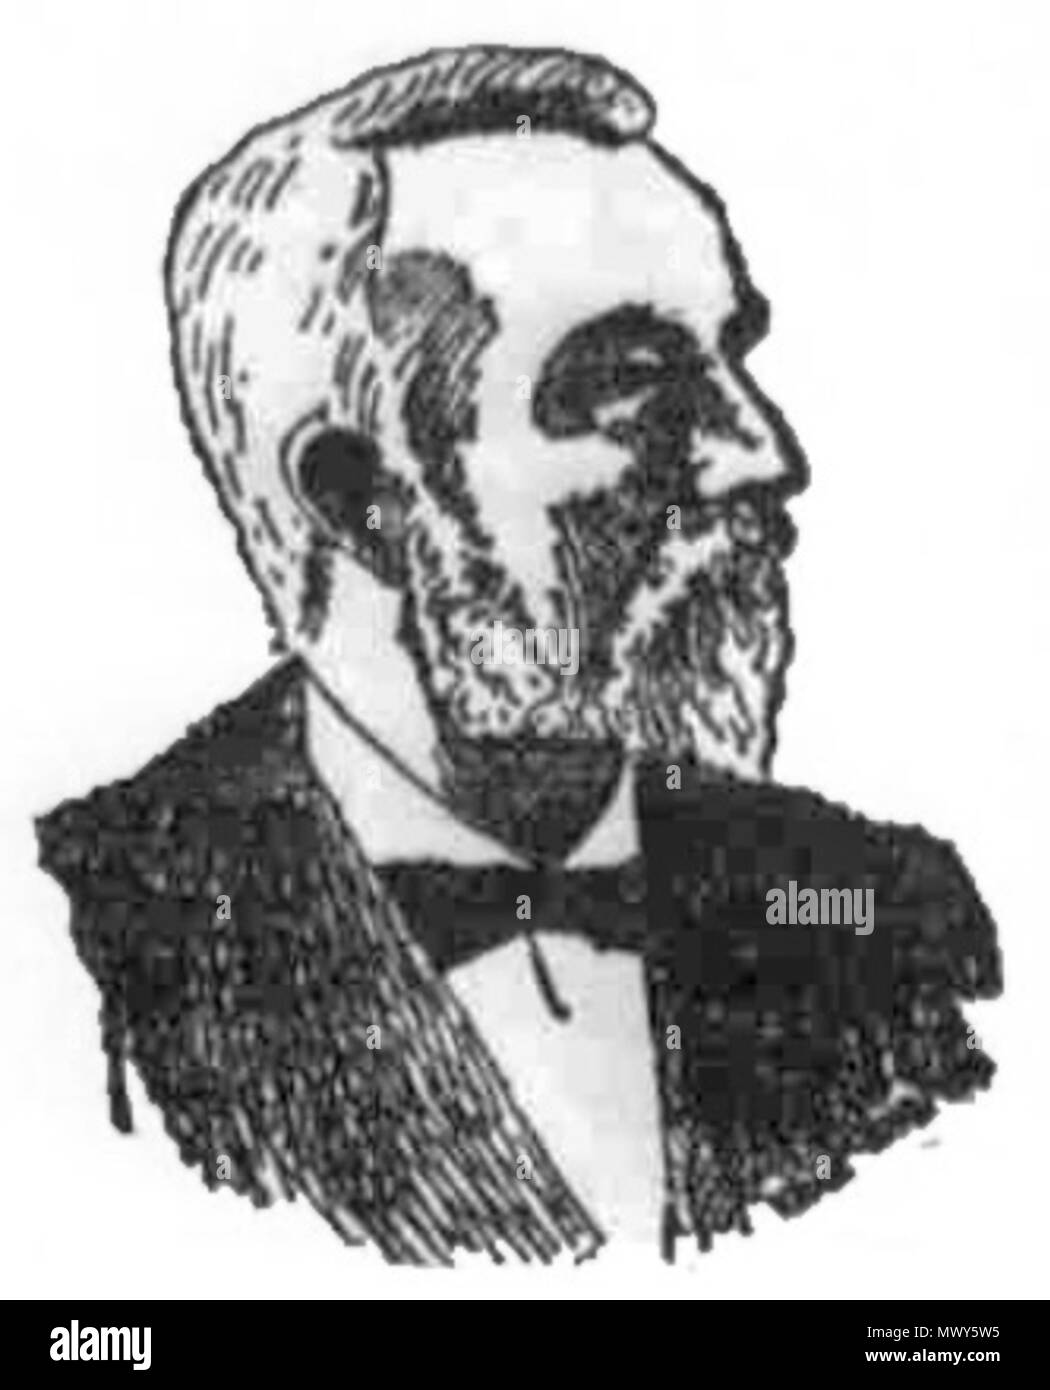 . English: John Mott-Smith (1824–1895) was the first dentist to set up a permanant practice in the Kingdom of Hawaii, and a politician and diplomat. 1895. newspaper sketch 442 Newspaper Sketch of John Mott-Smith - Stock Image